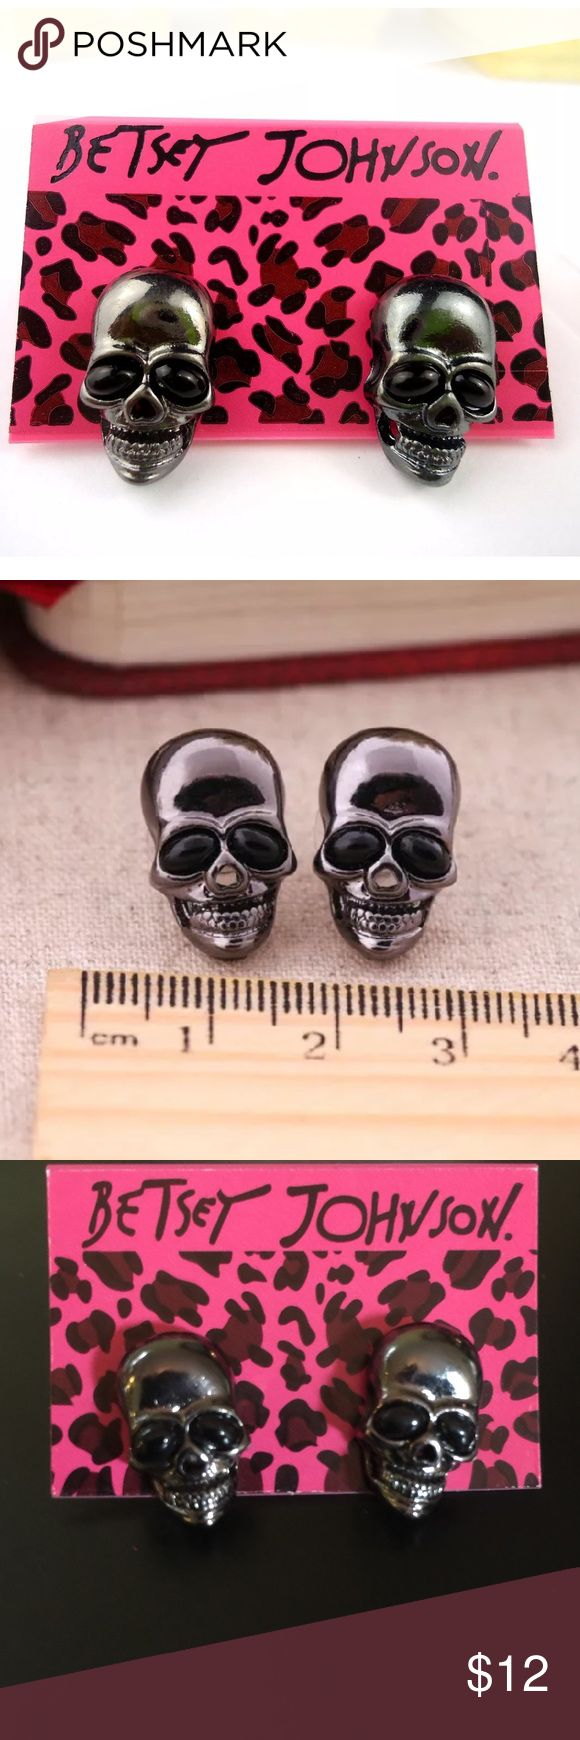 Host Pick Cute Skull Earrings Betsy Johnson Skull Earrings Betsey Johnson  Jewelry Earrings